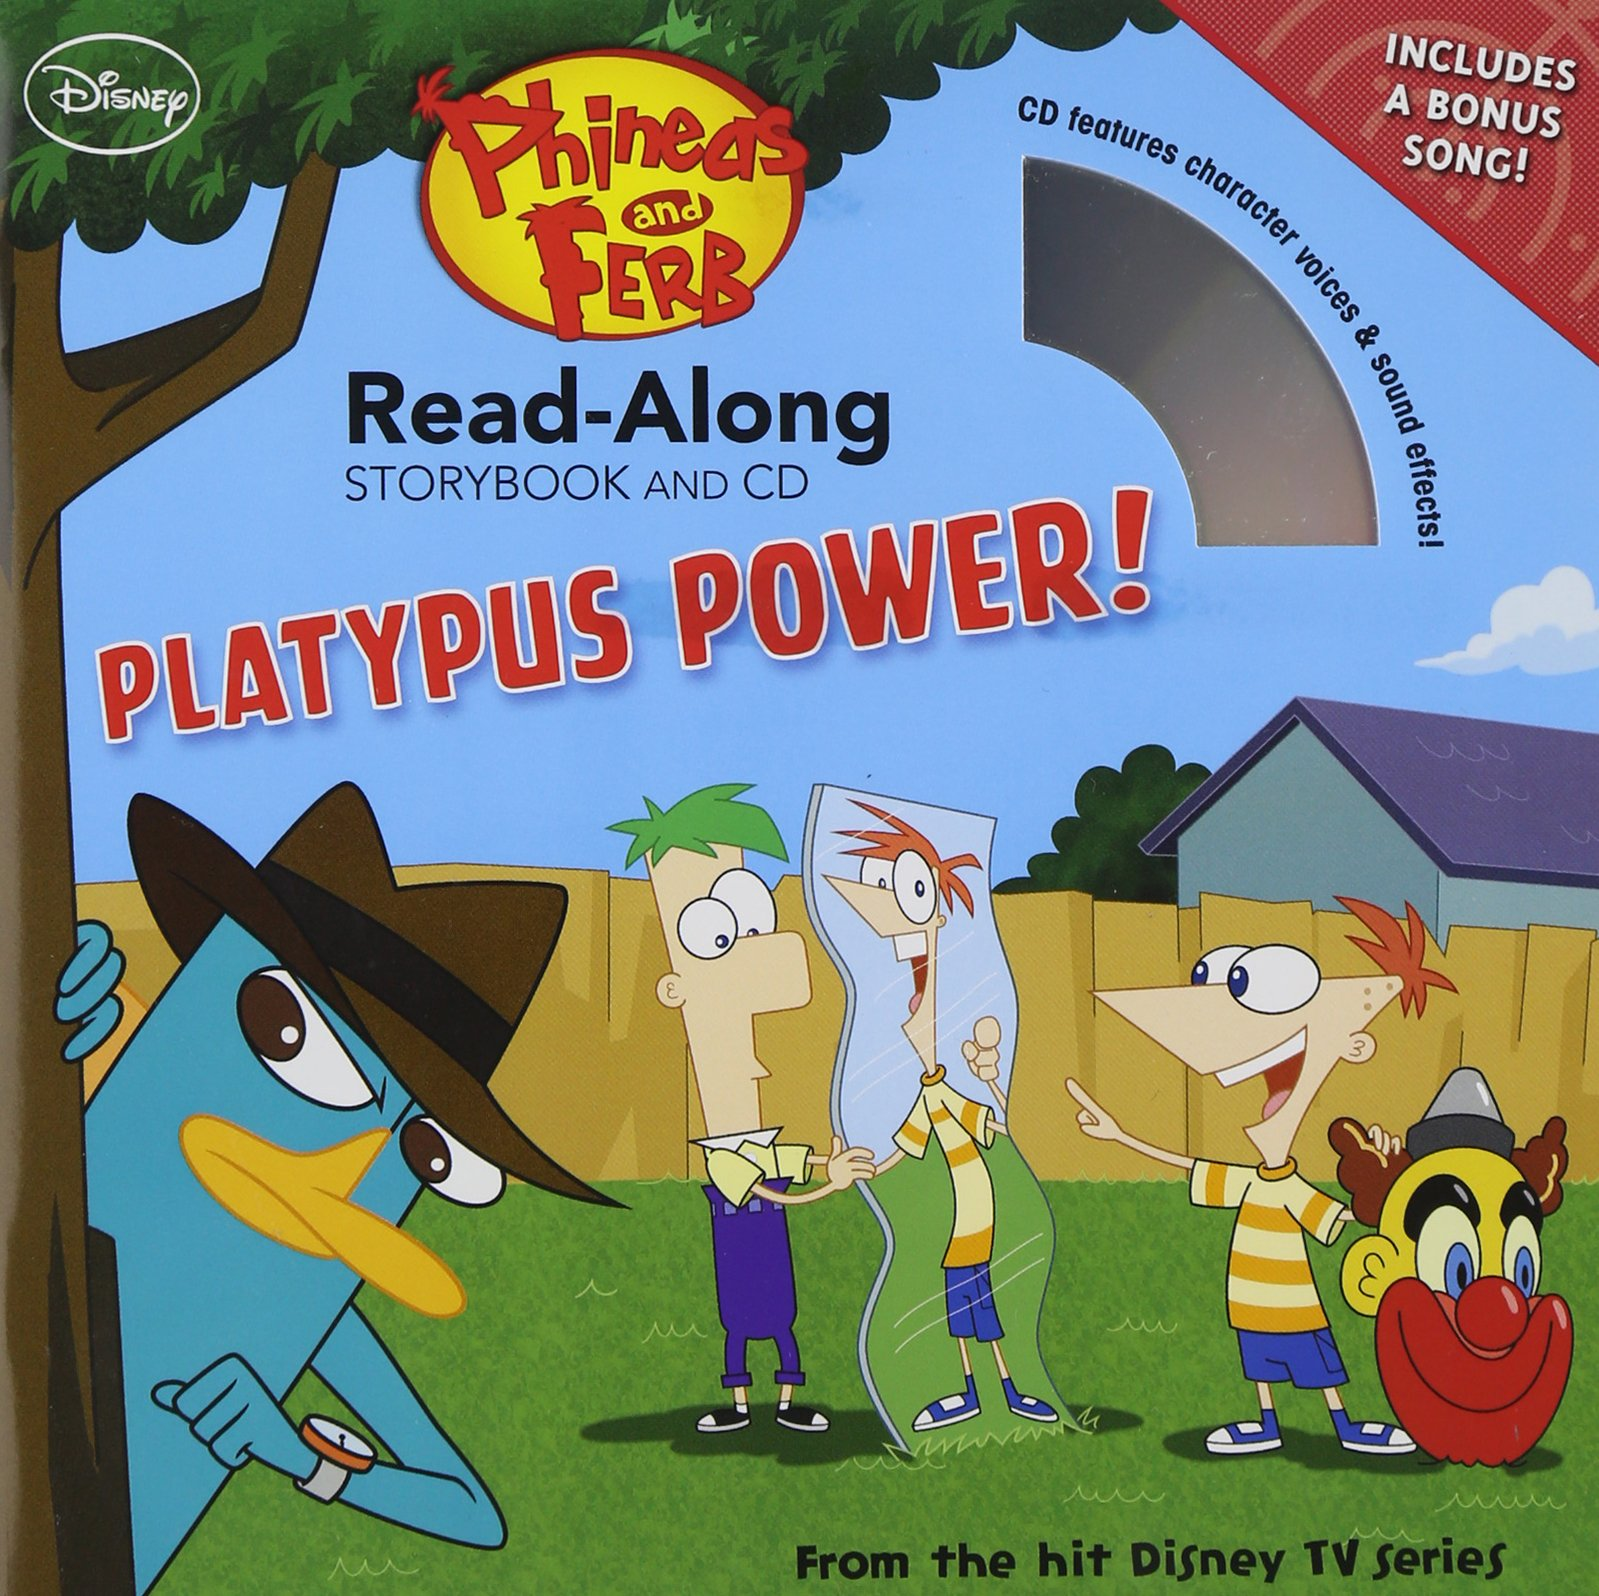 Phineas Ferb Read Along Storybook CD product image